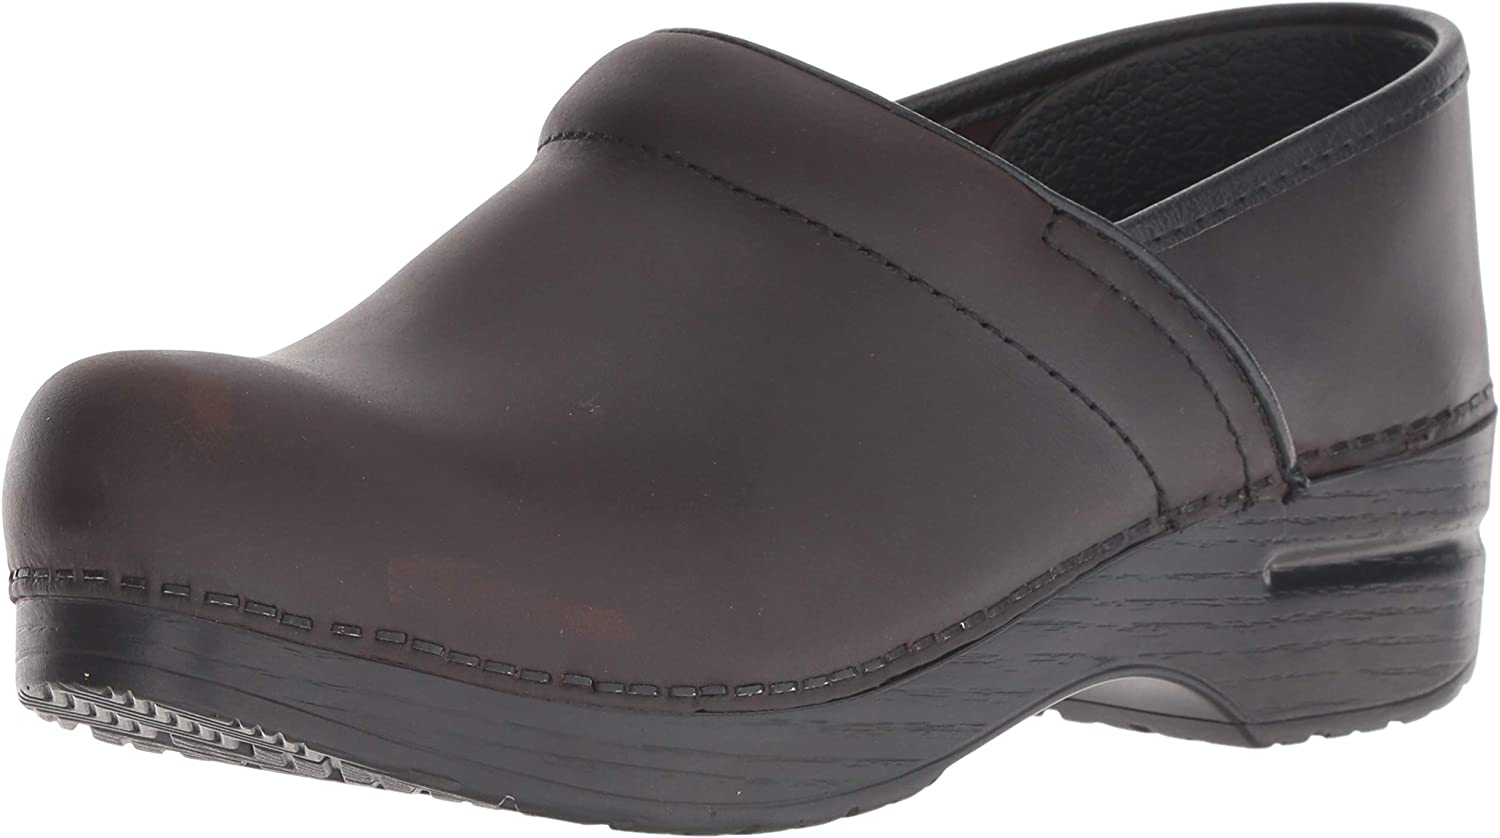 Dansko Women's Professional Antique Brown/Blk Clog 11.5-12 M US